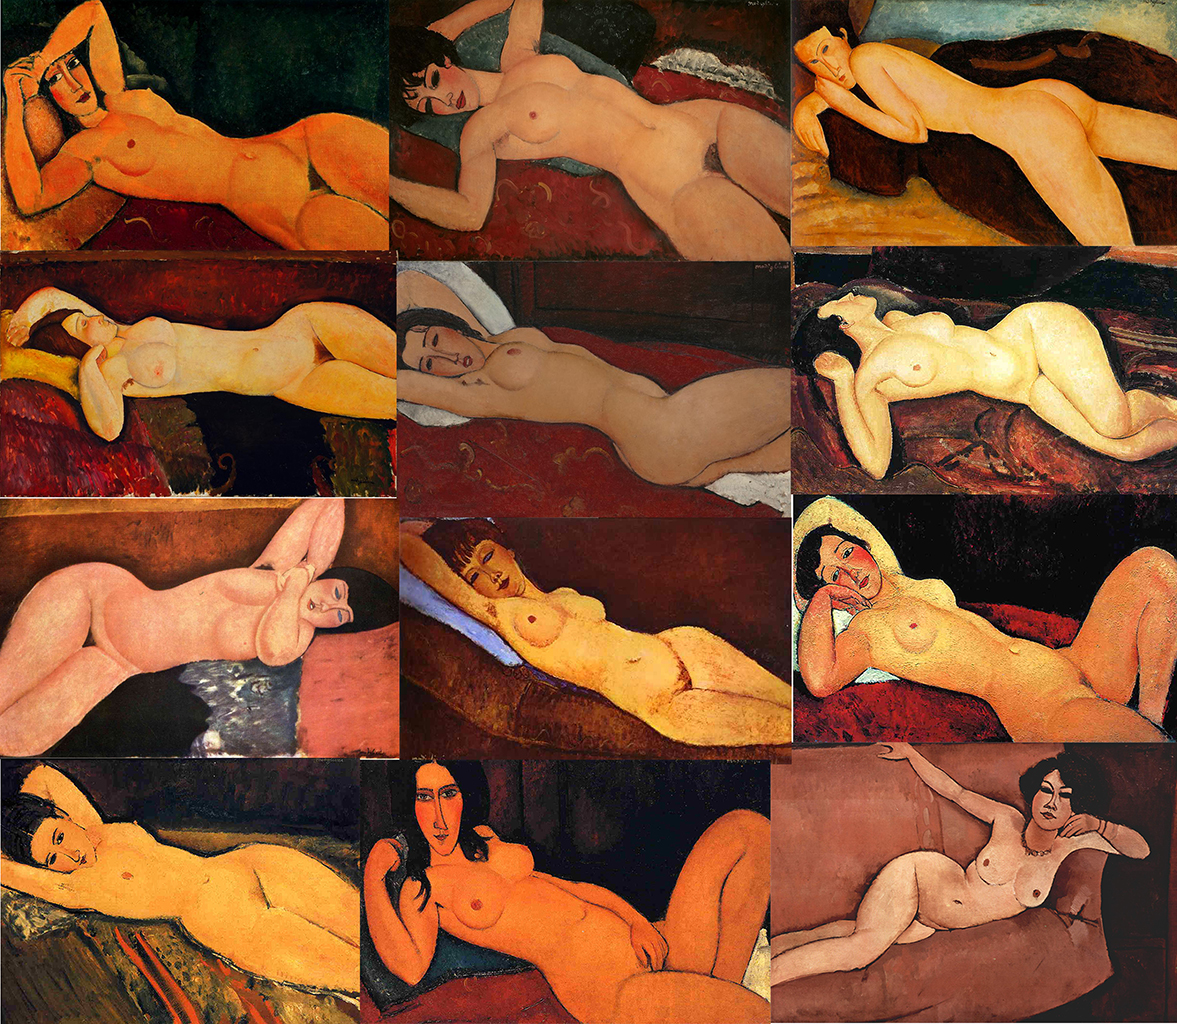 Fig. 1 Nudes from 1916-1919 by Amadeo Modigliani